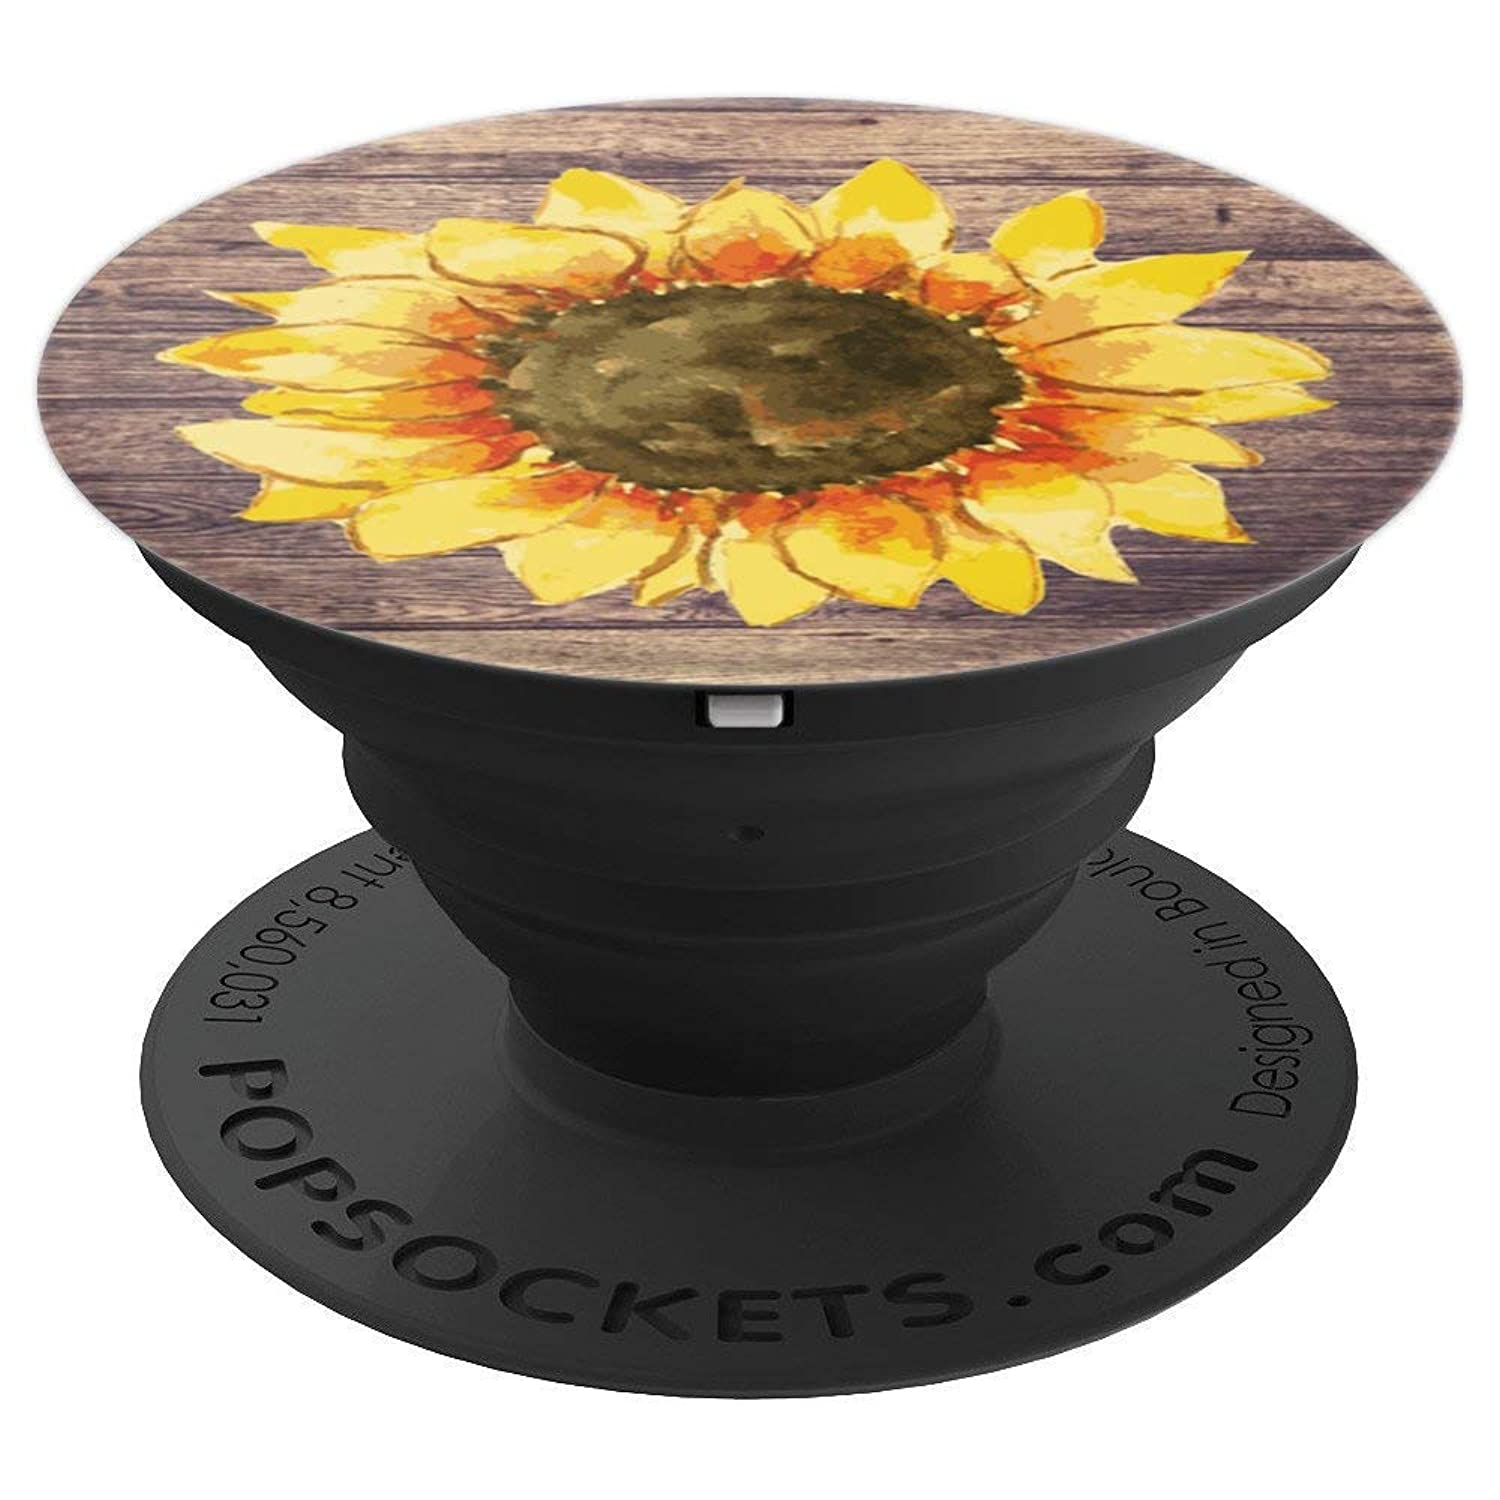 Sunflower Pretty Yellow with Rustic Barn Wood Background - PopSockets Grip and Stand for Phones and Tablets